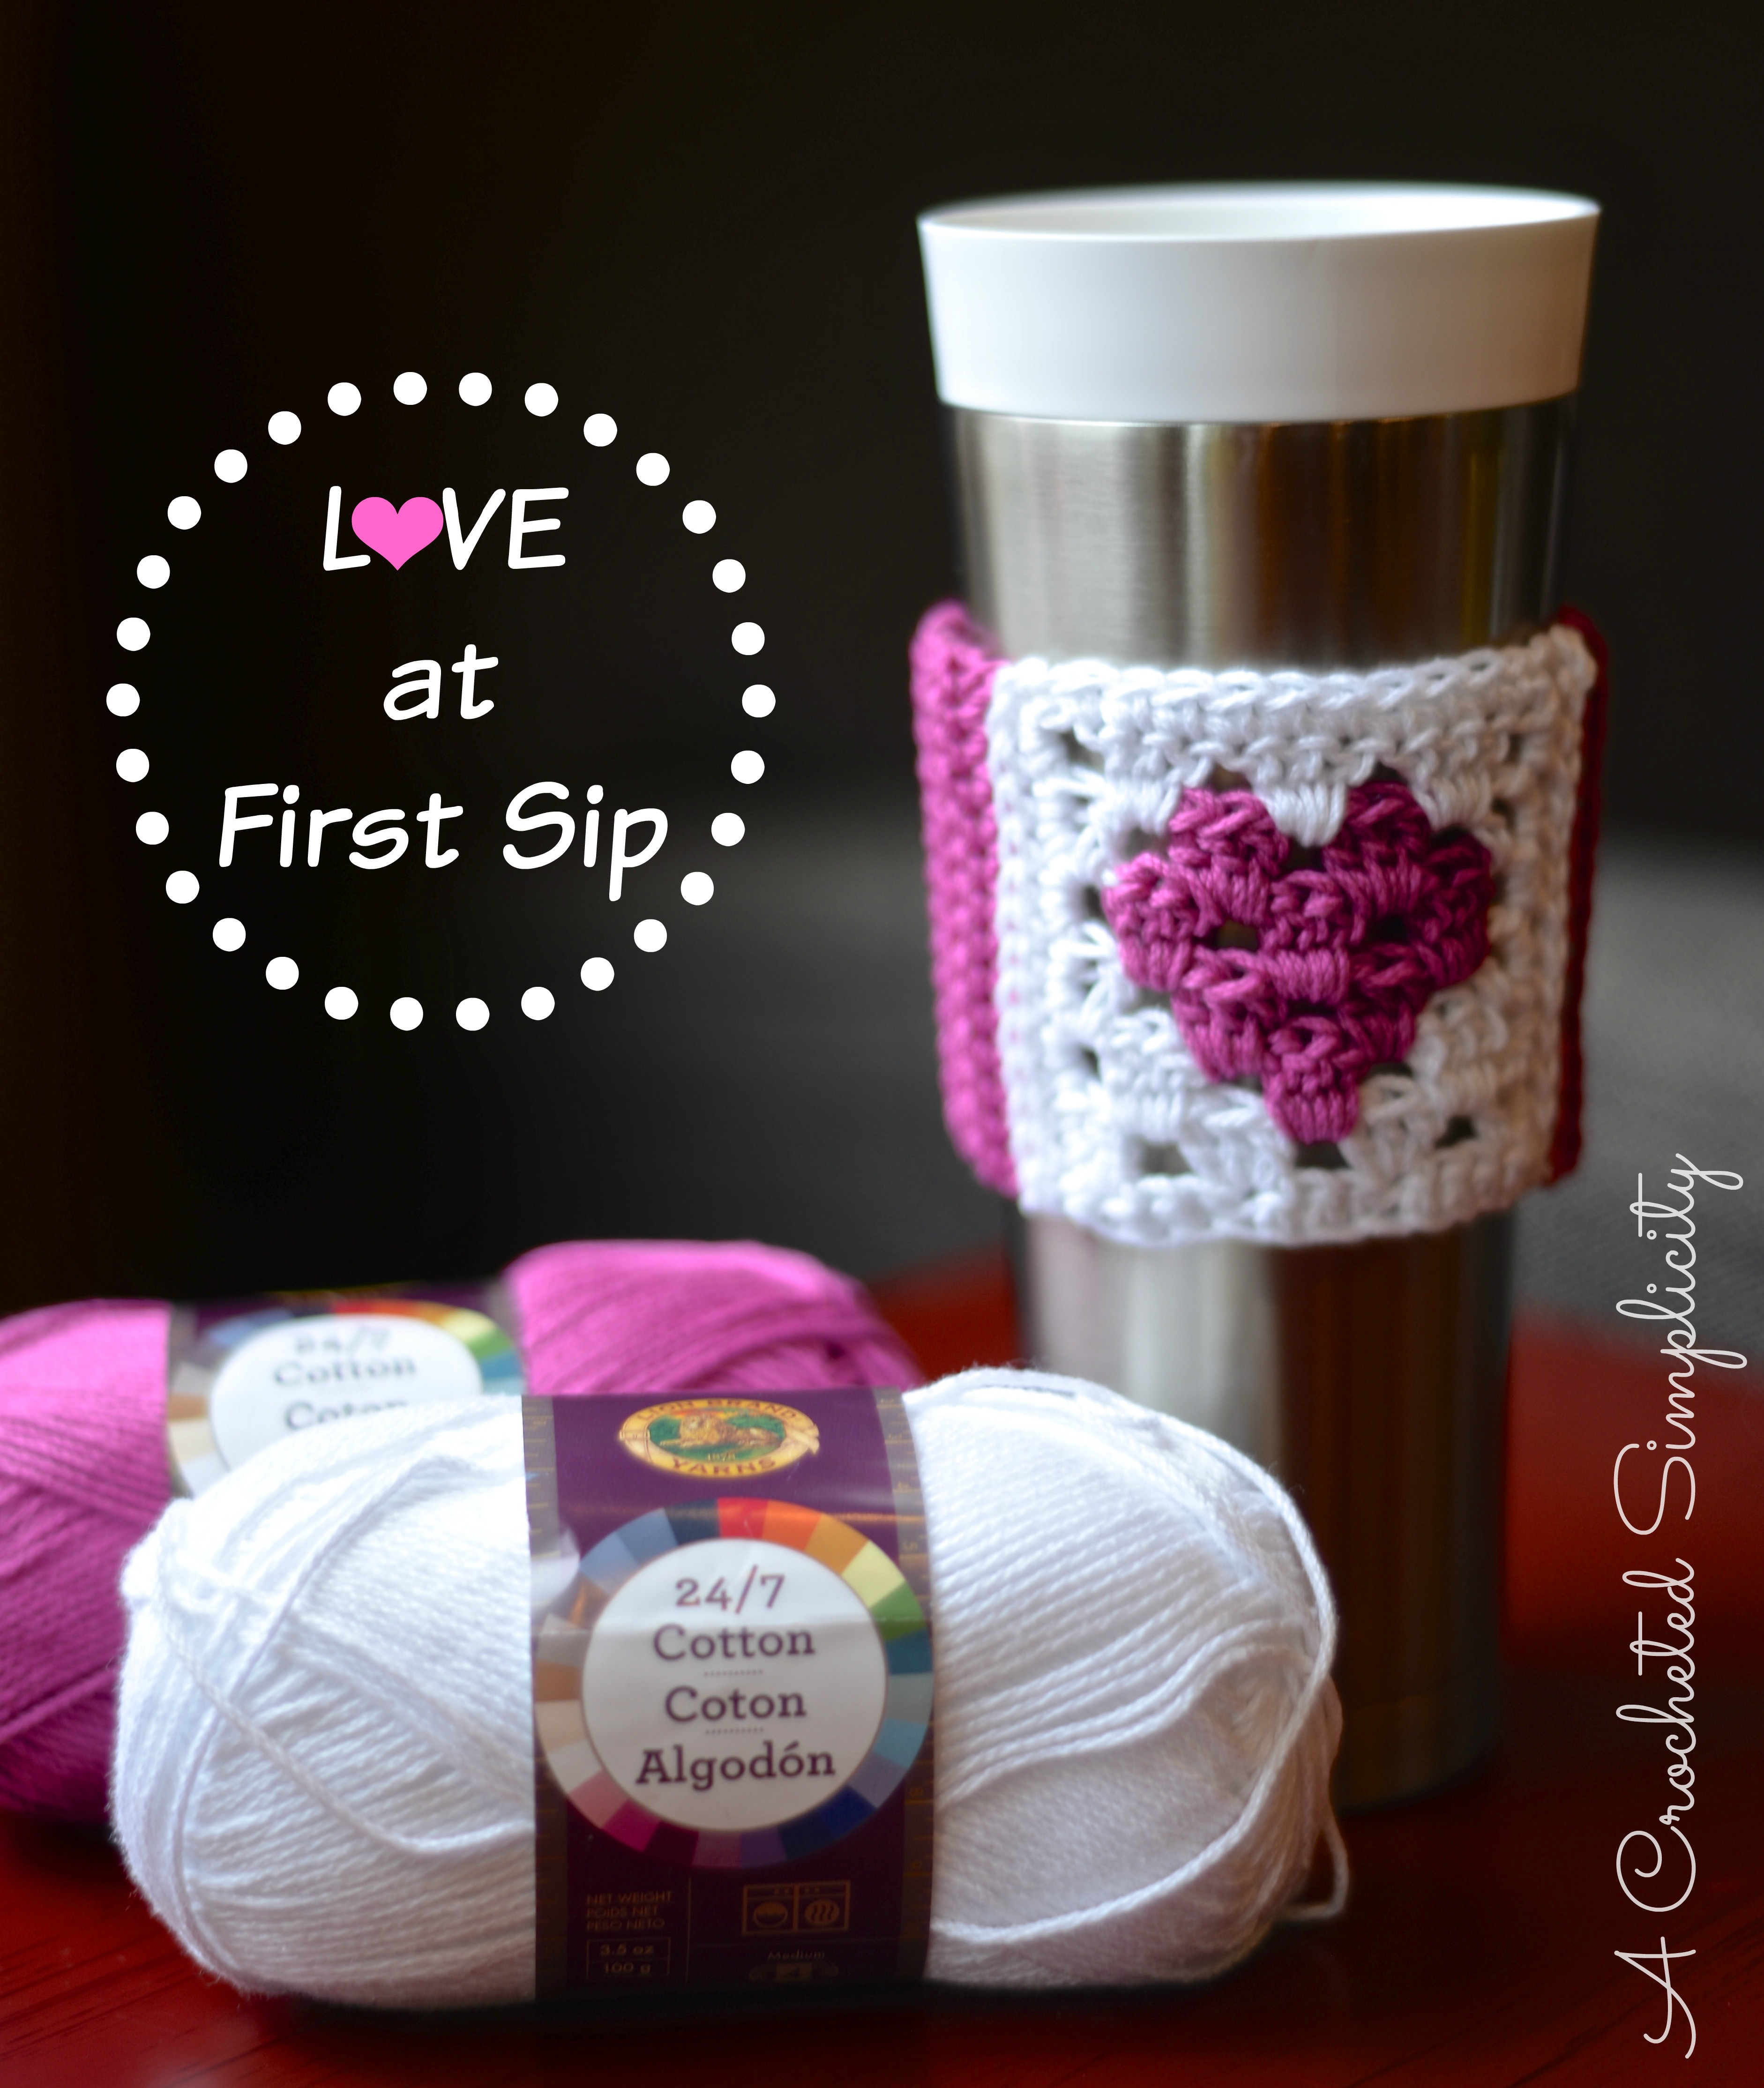 30 Free Crochet Patterns To Celebrate Love A Crocheted Simplicity